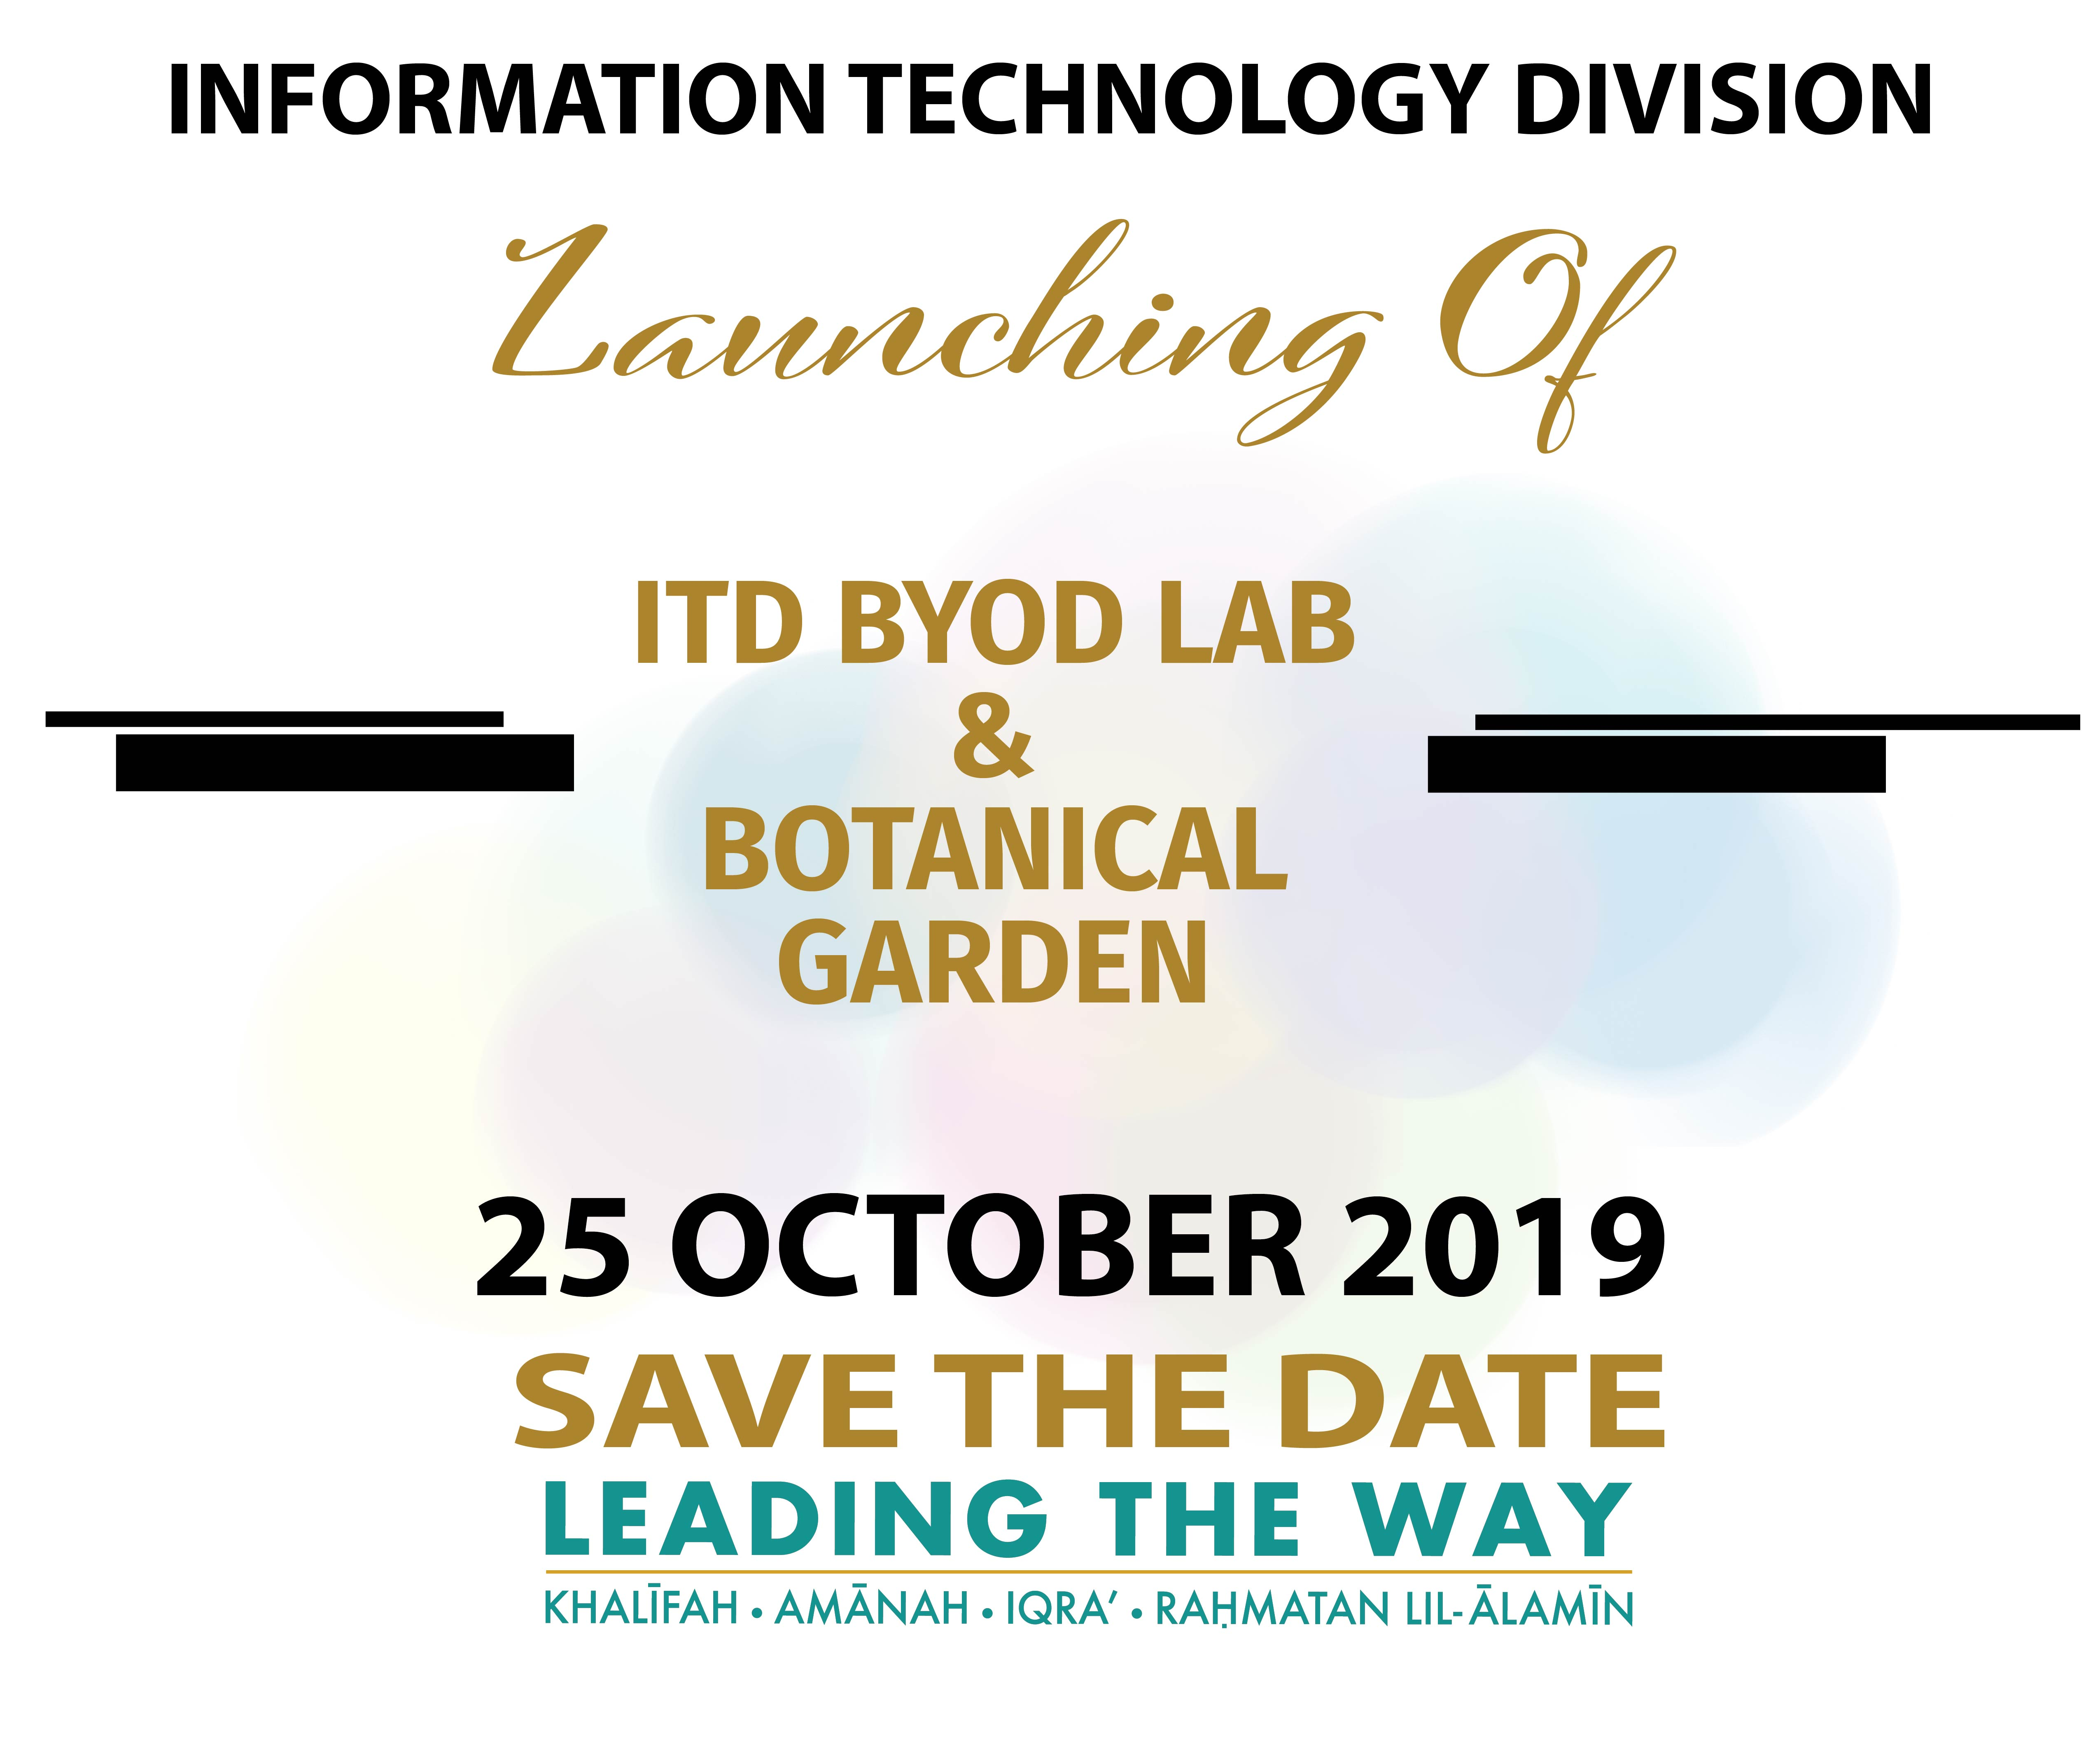 LAUNCHING OF ITD BYOD LAB & BOTANICAL GARDEN